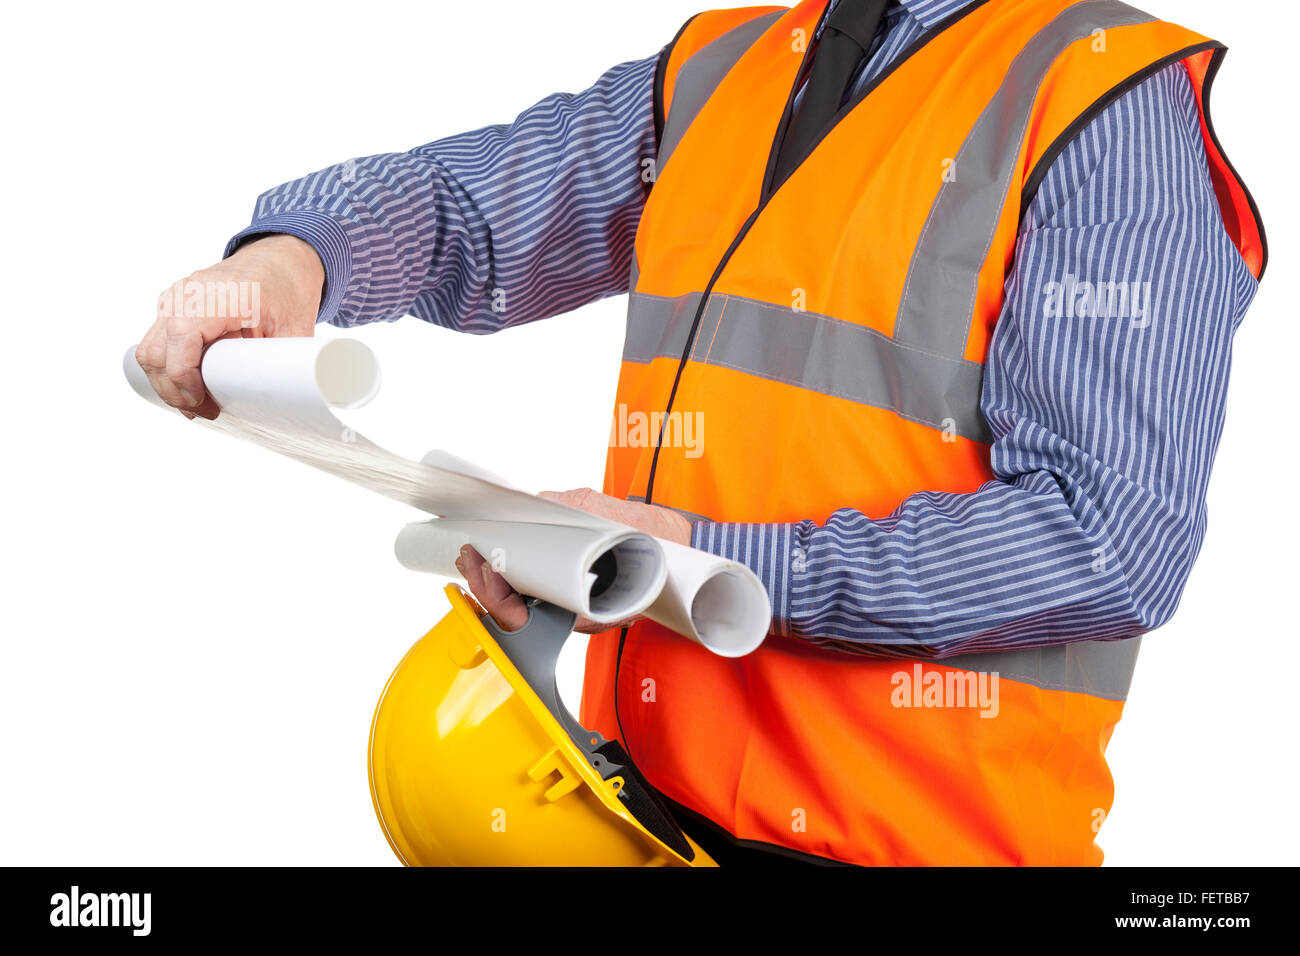 Building Surveyor In Orange Visibility Vest Checking Construction Drawings